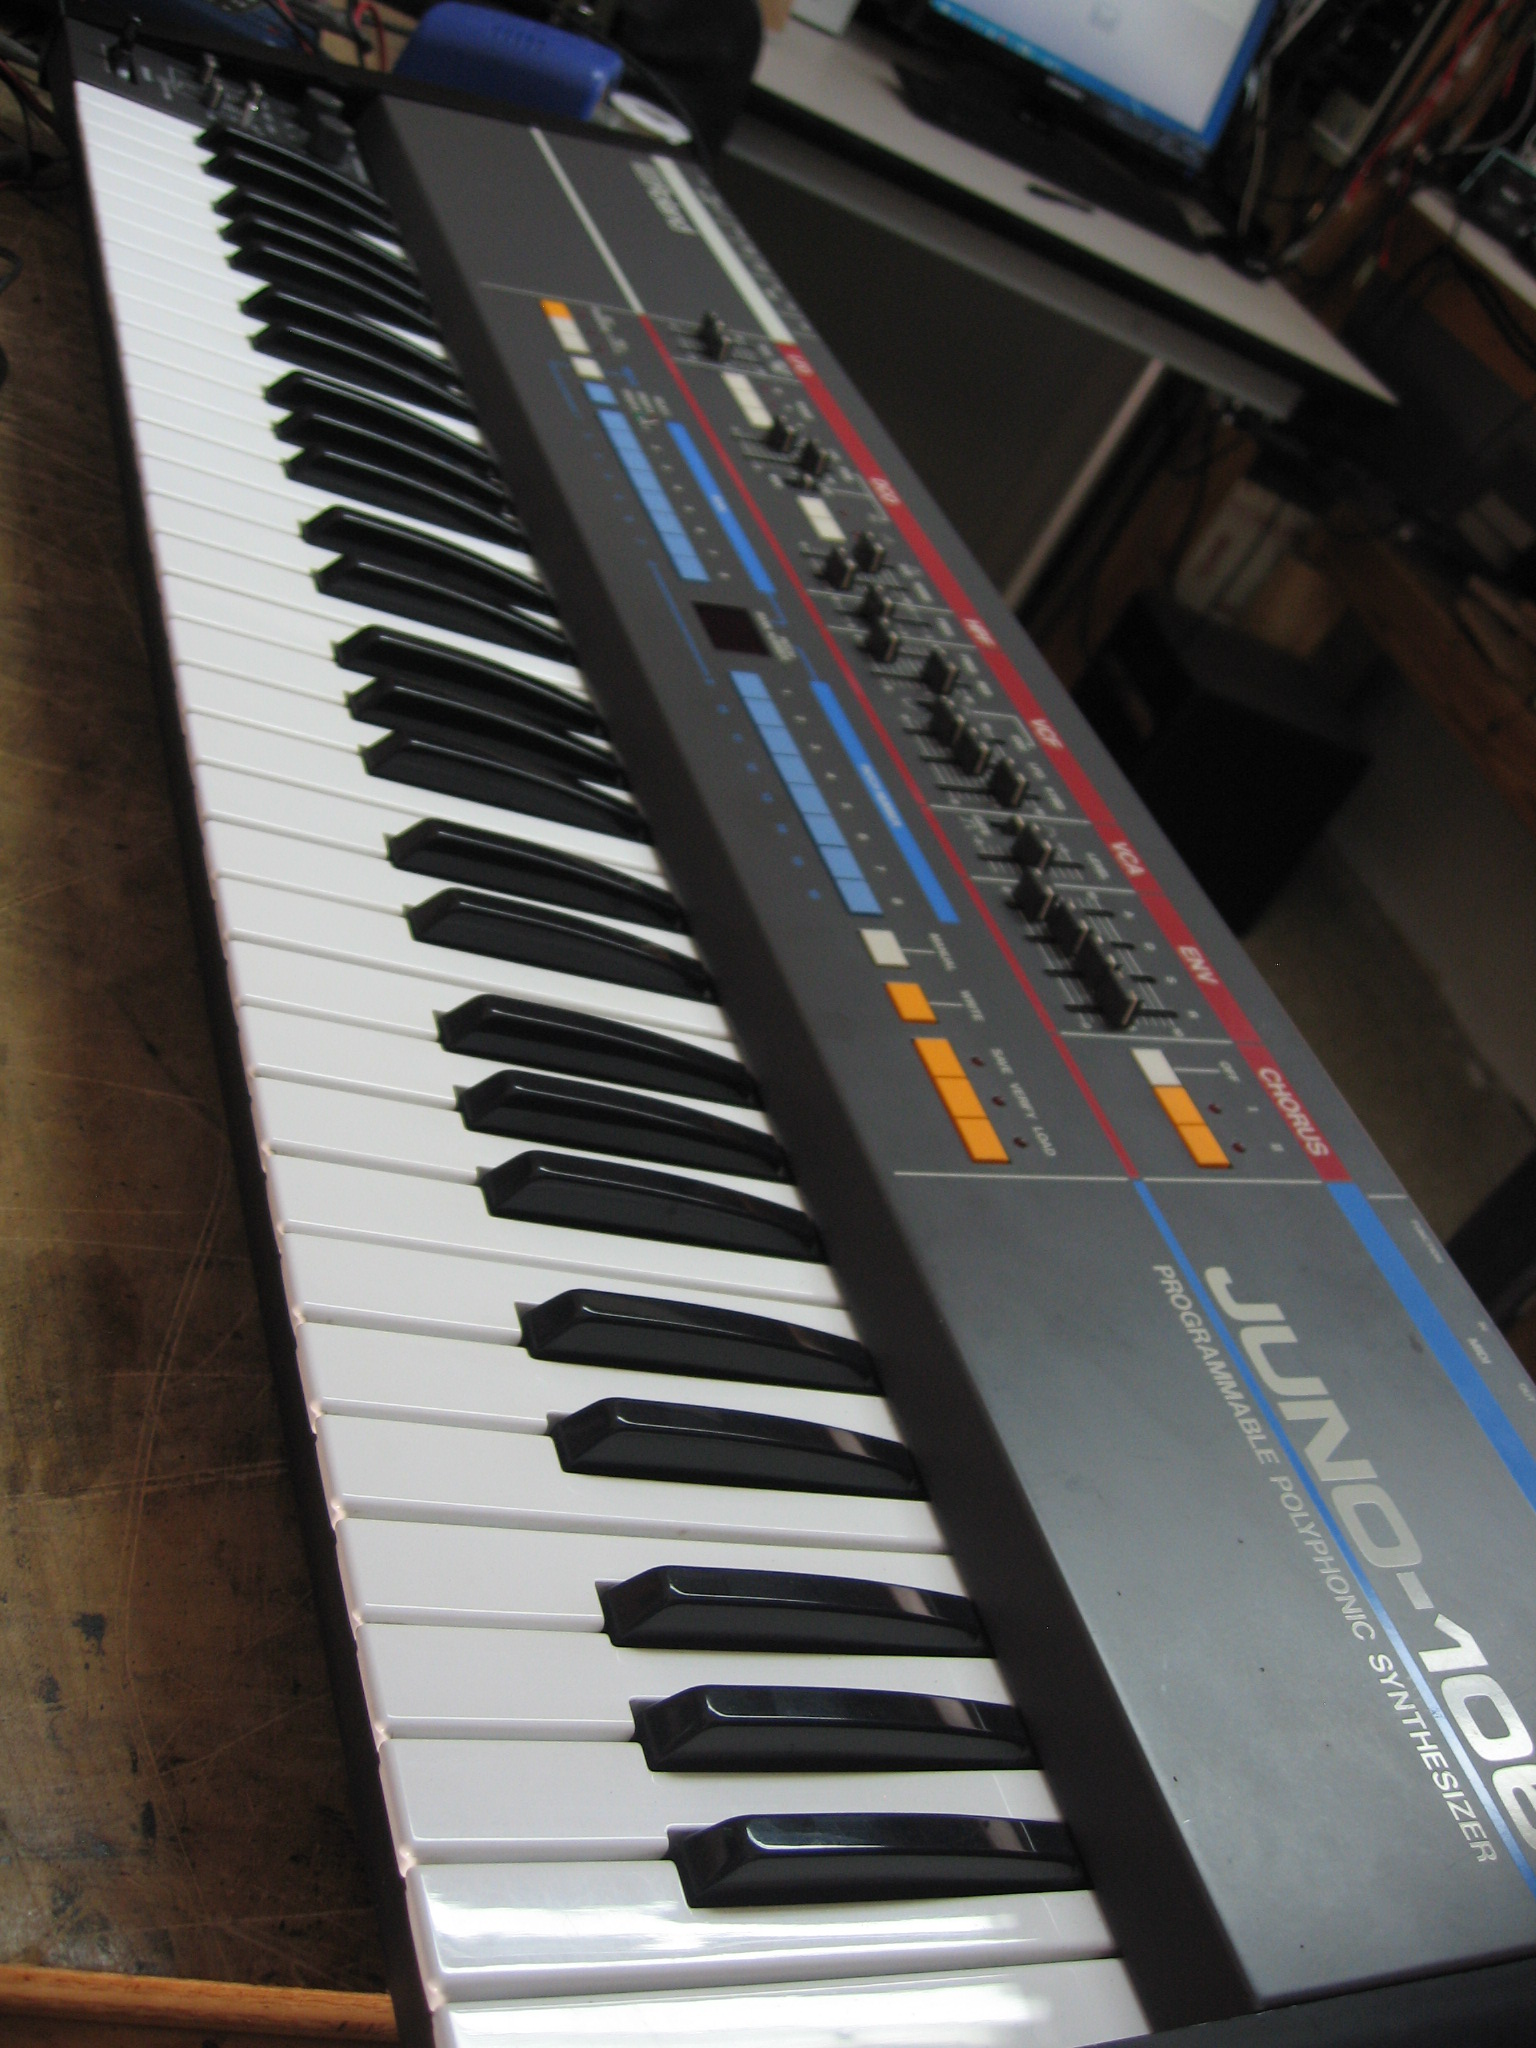 This Old Synth Blog Vintage Analog Synthesizer Part Of Printed Circuit Board With Electronic When Quoting Restoration Repair The Juno 106 I Often Describe It As A Money Pit Because Amount Work Requires And High Parts Price